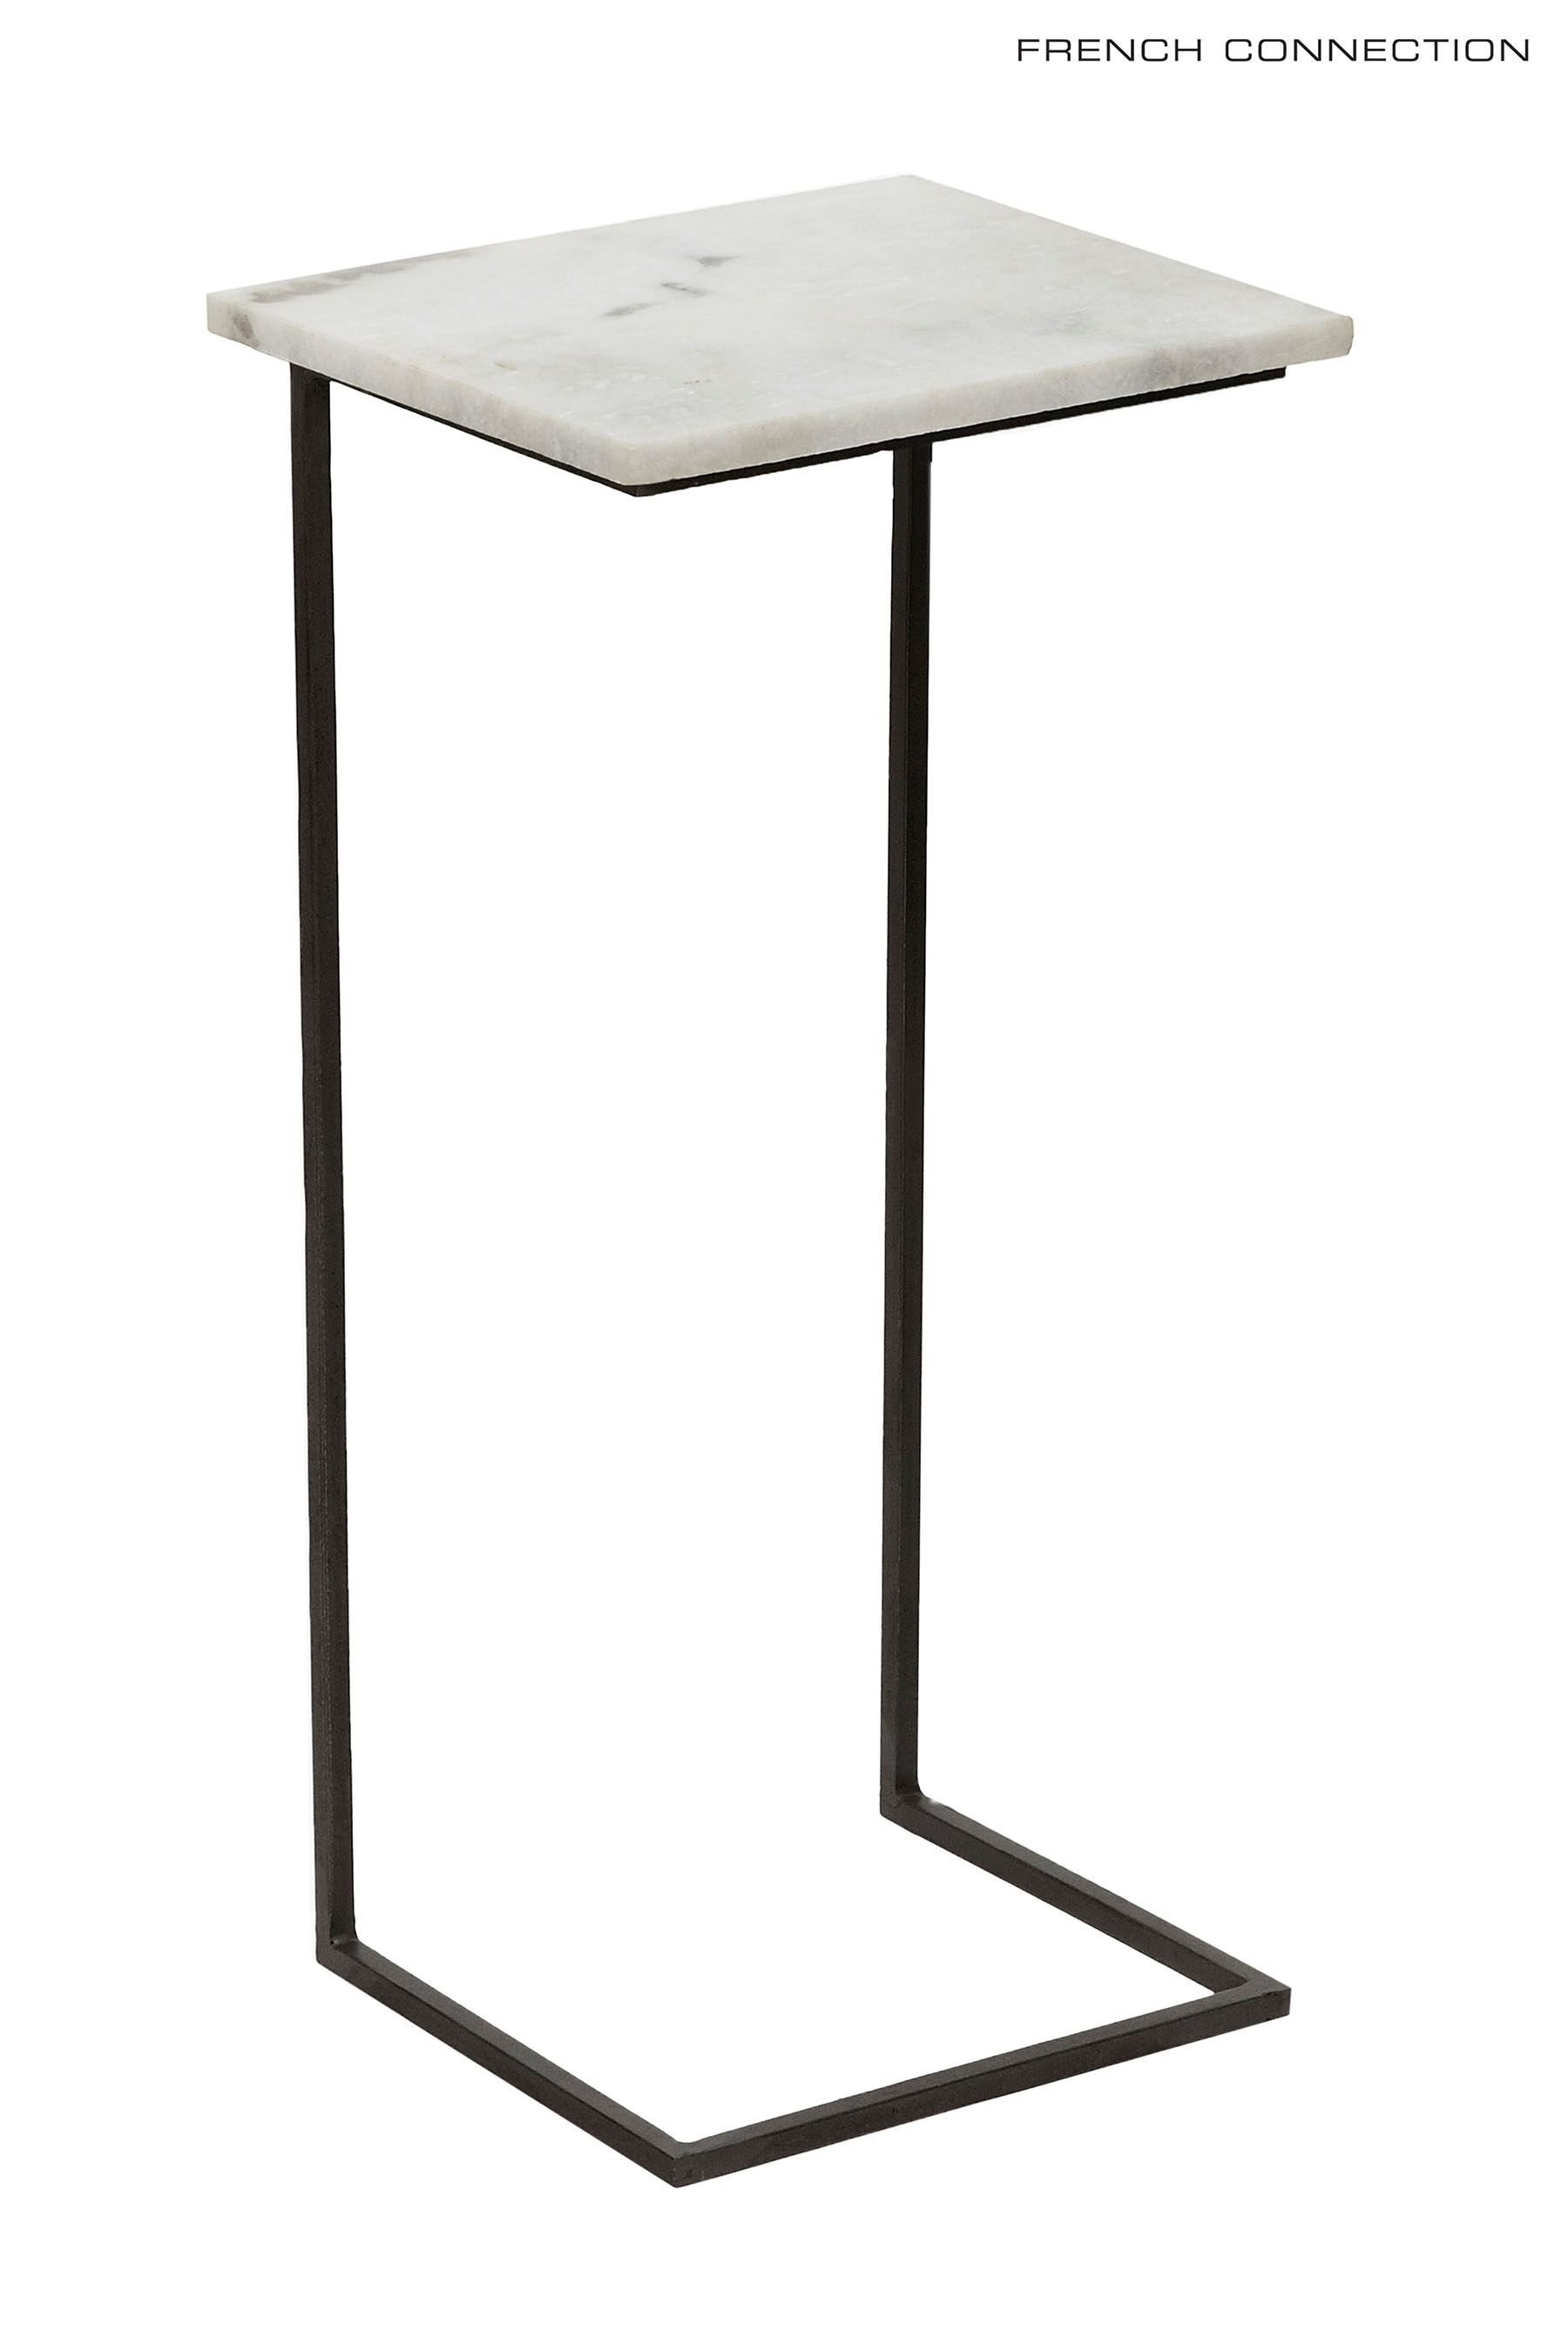 Buy French Connection Marble Laptop Or Side Table From The